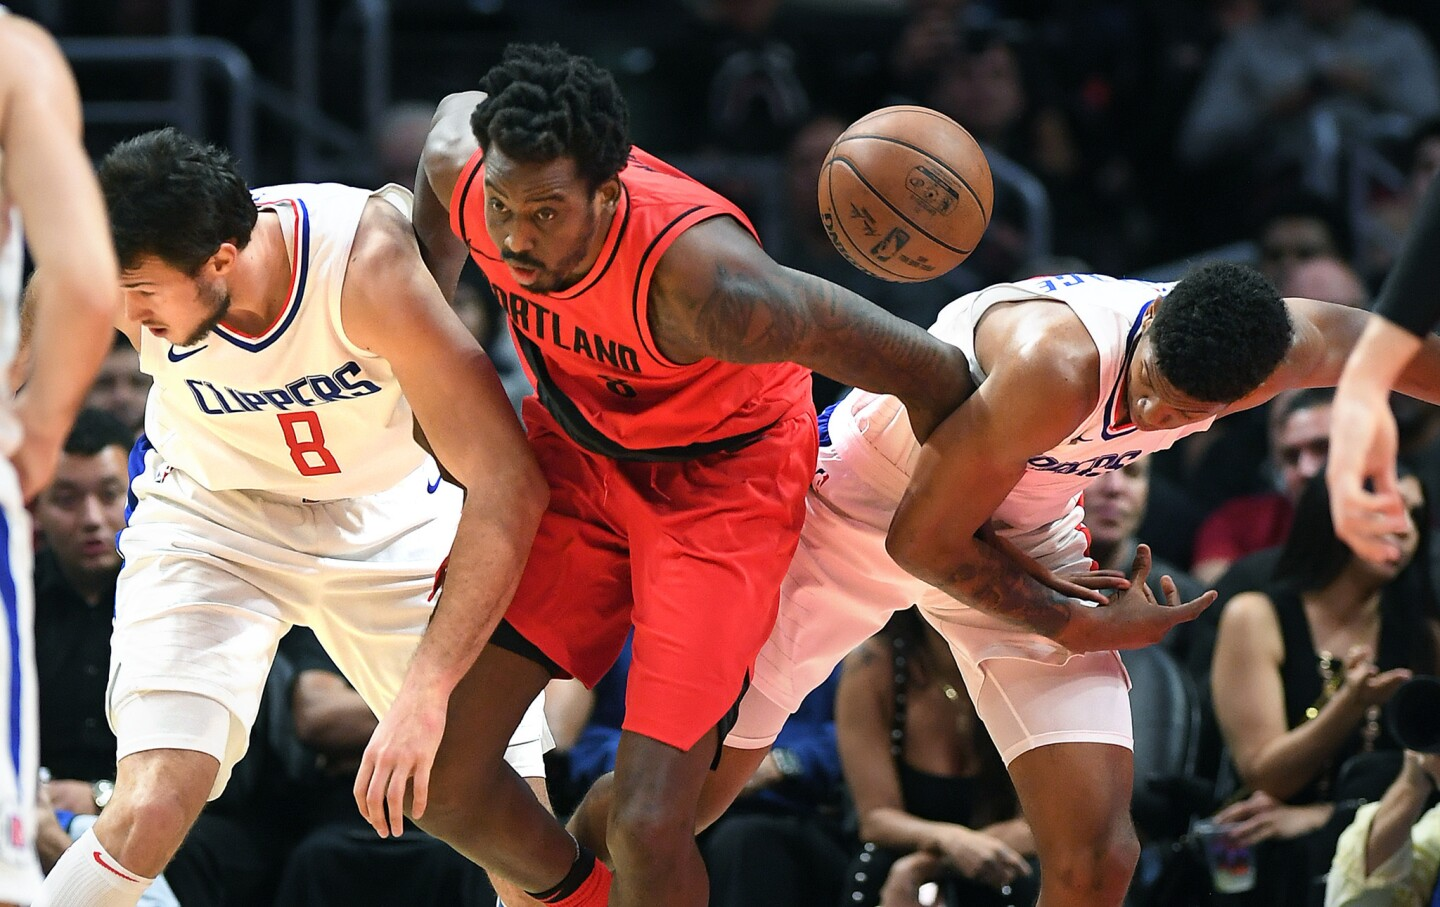 Clippers Danilo Gallinari, left, and Tyrone Wallace battle for a loose ball with Trail Blazers' Al-Farouq Aminu in the 4th quarter.